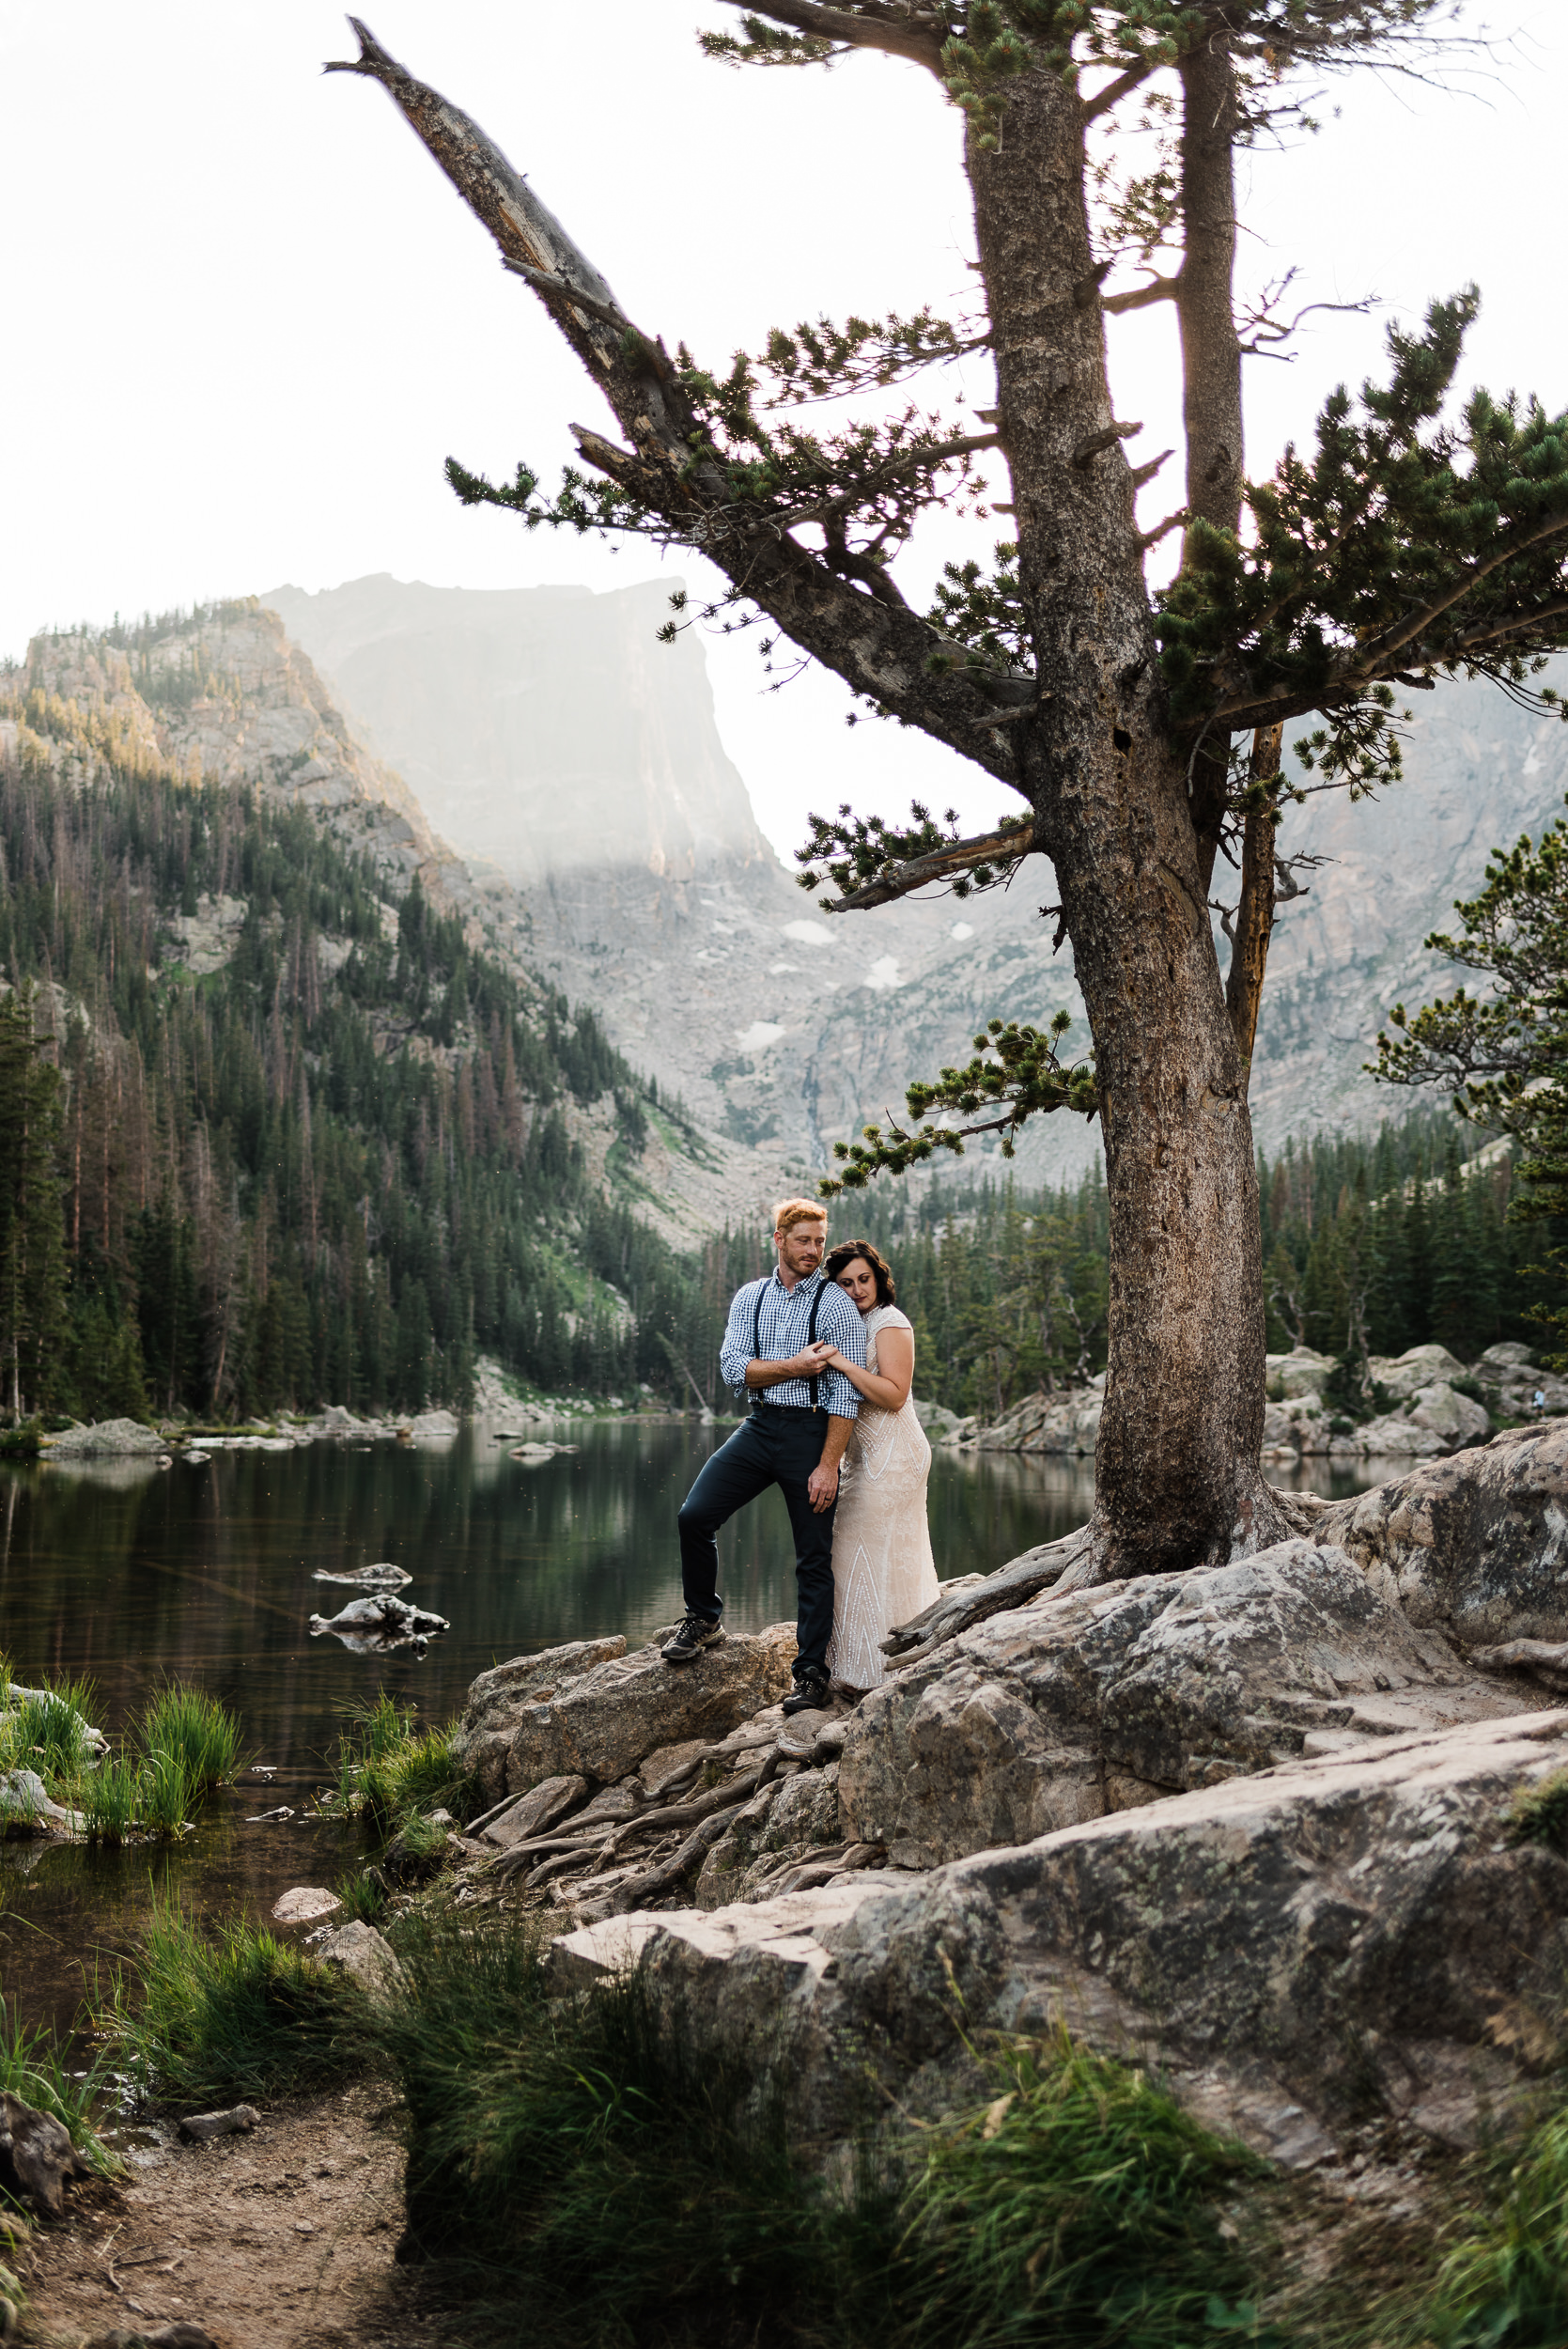 Katie & Corey | Elopement in Rocky Mountain National Park